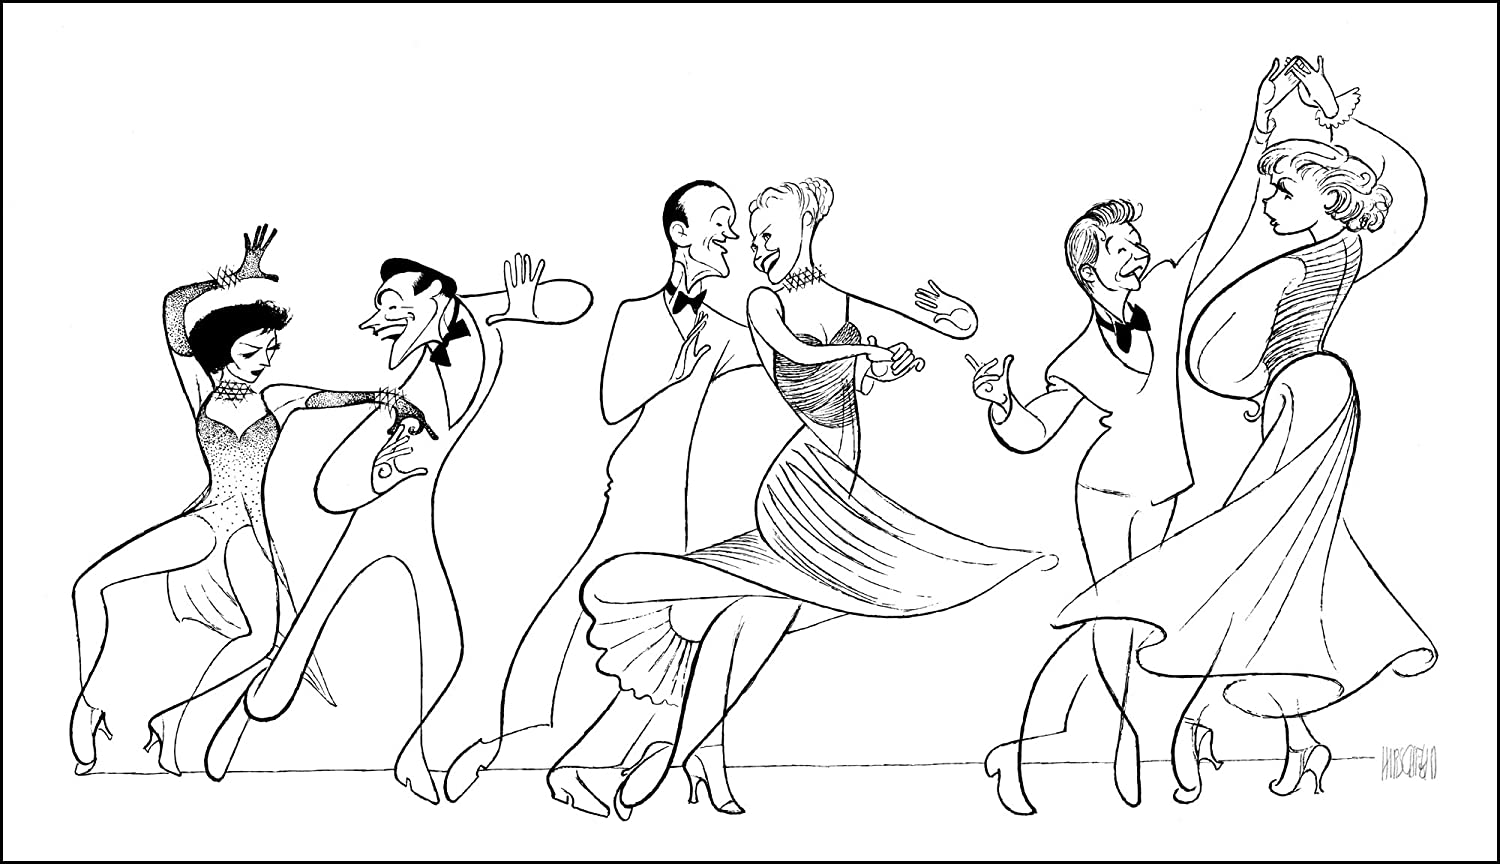 Hand Signed AL HIRSCHFELD, I'LL TAKE ROMANCE, Limited-Edition Lithograph, Depicting: GENE KELLY, CYD CHARISSE, FRED ASTAIRE, GINGER ROGERS, DONALD O'CONNOR, AND DEBBIE REYNOLDS I' LL TAKE ROMANCE DONALD O' CONNOR THE MARGO FEIDEN GALLERIES LTD.